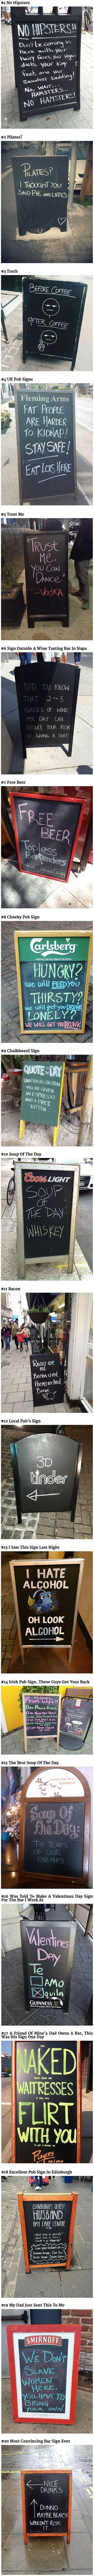 Here are some funny and geeky chalkboard signs that think outside the box.: